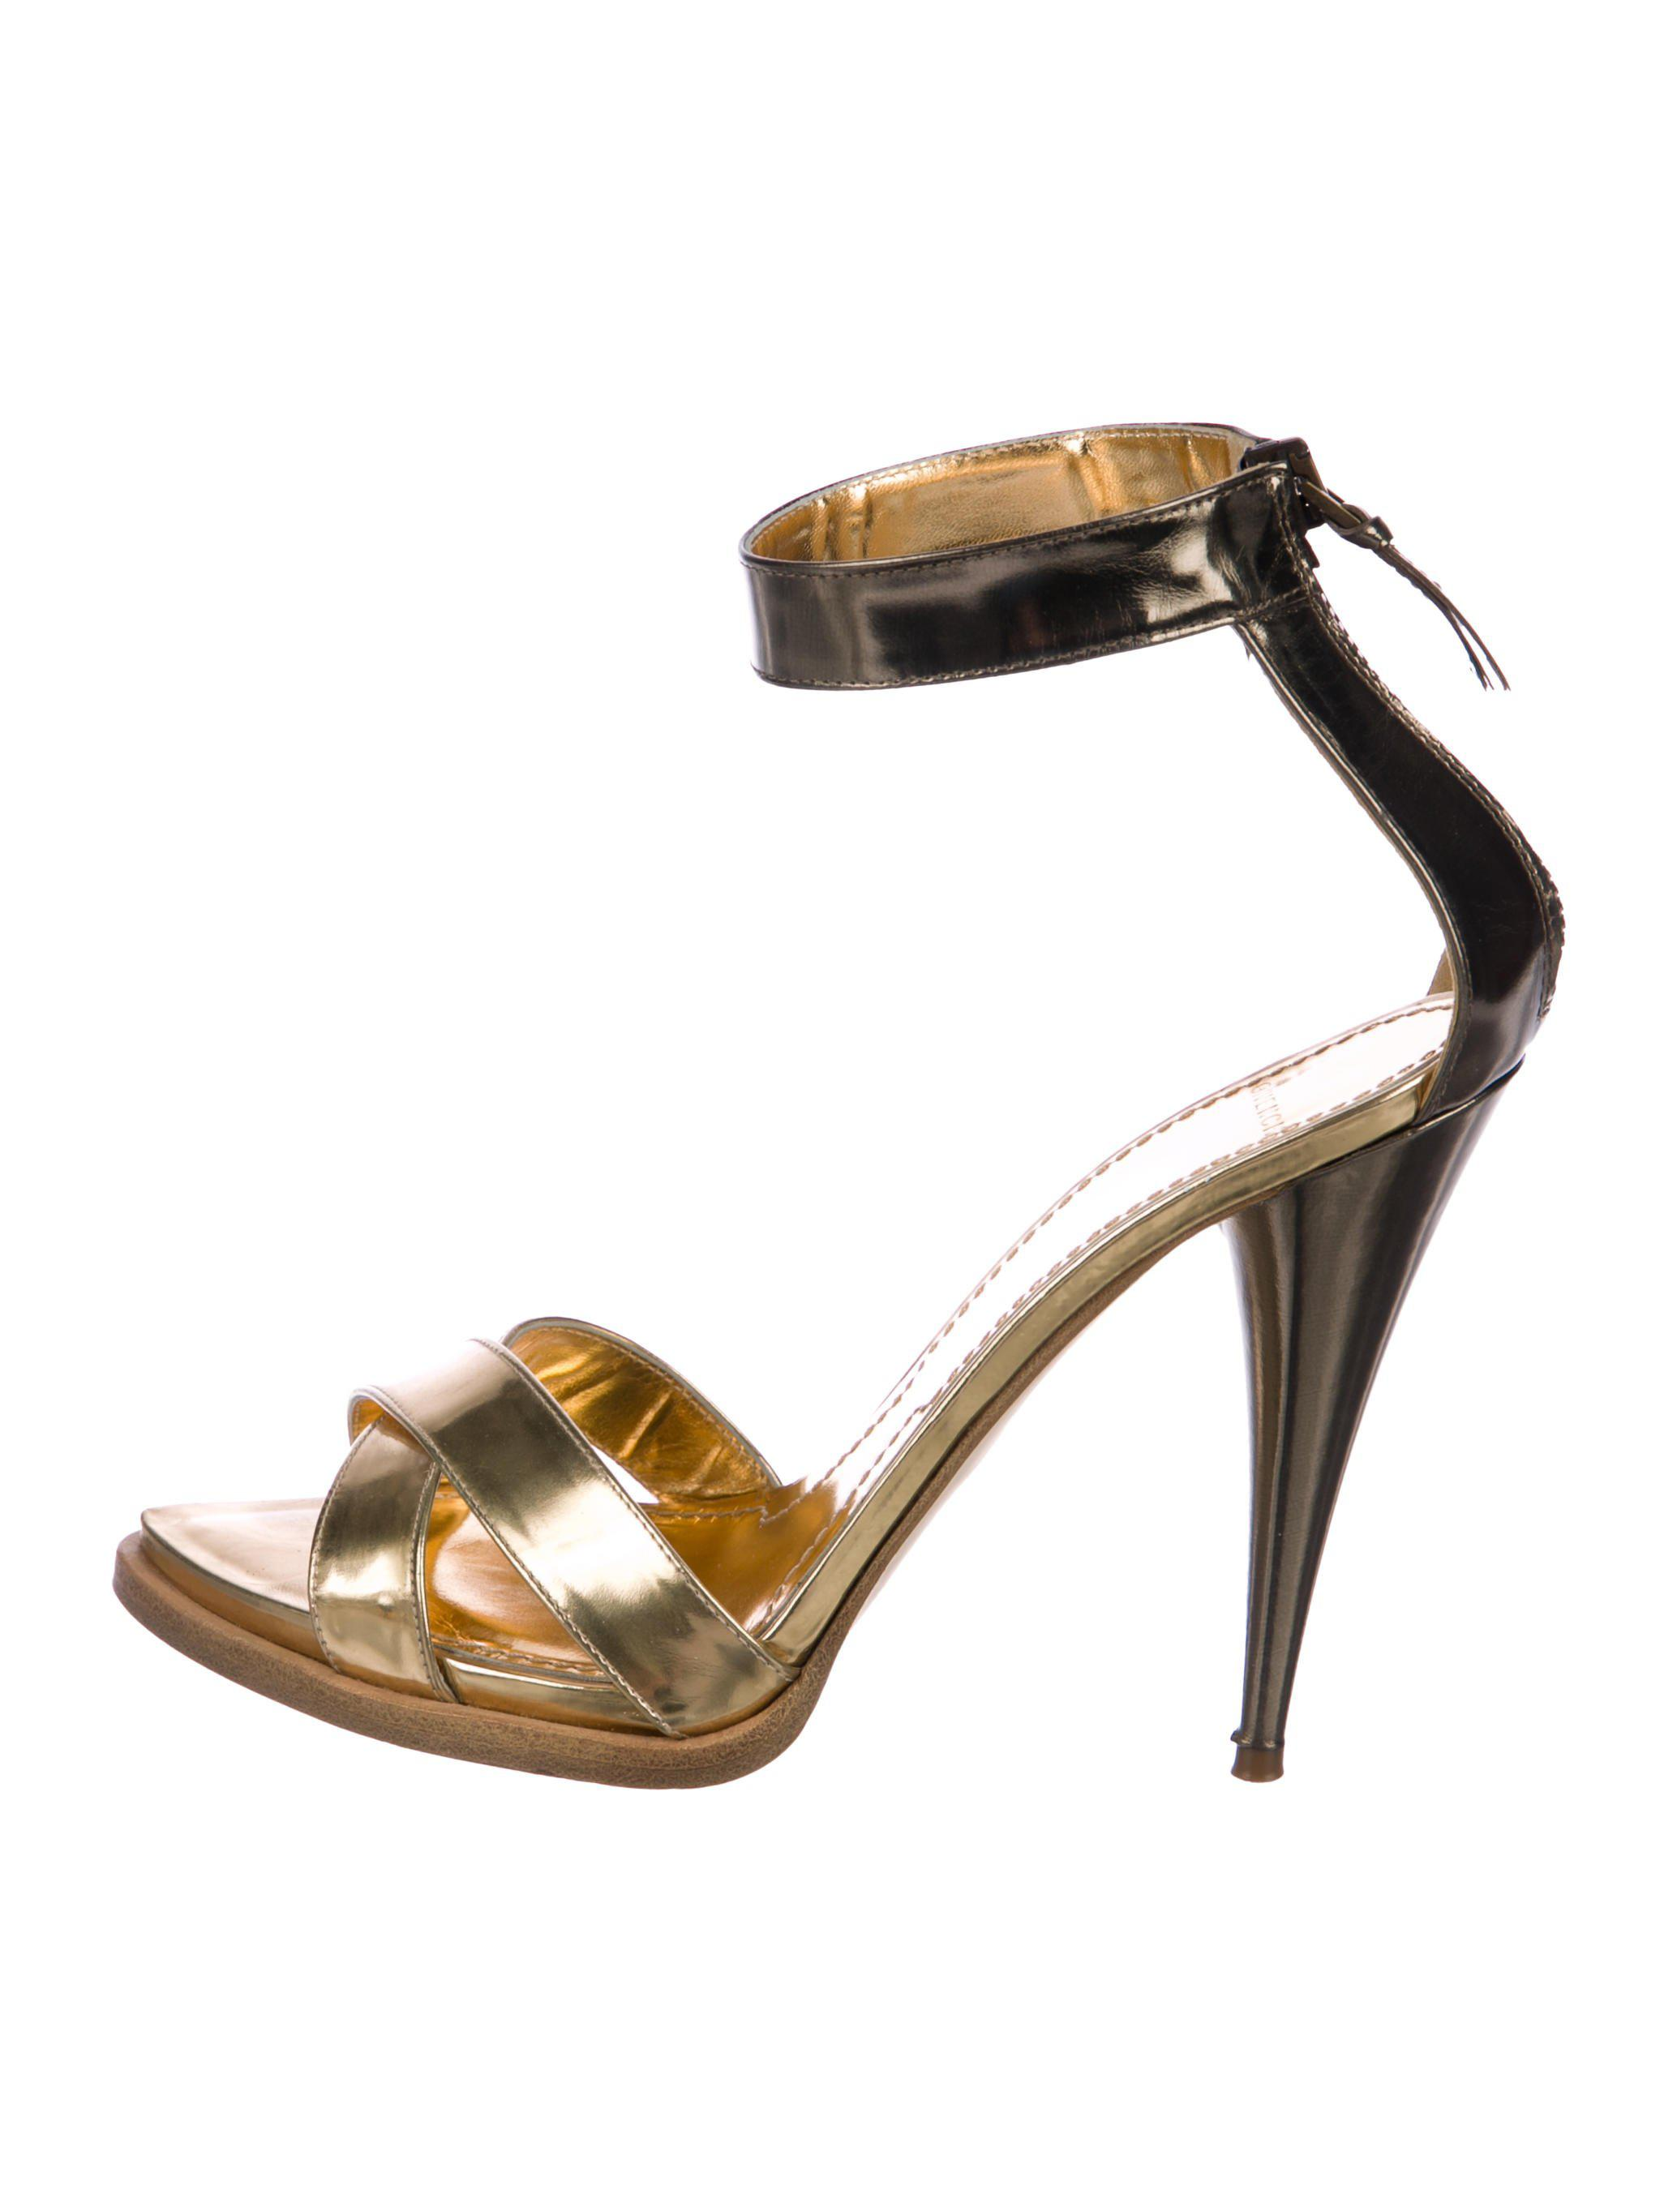 09ff9fb8d7a Lyst - Givenchy Multistrap Sandals in Metallic